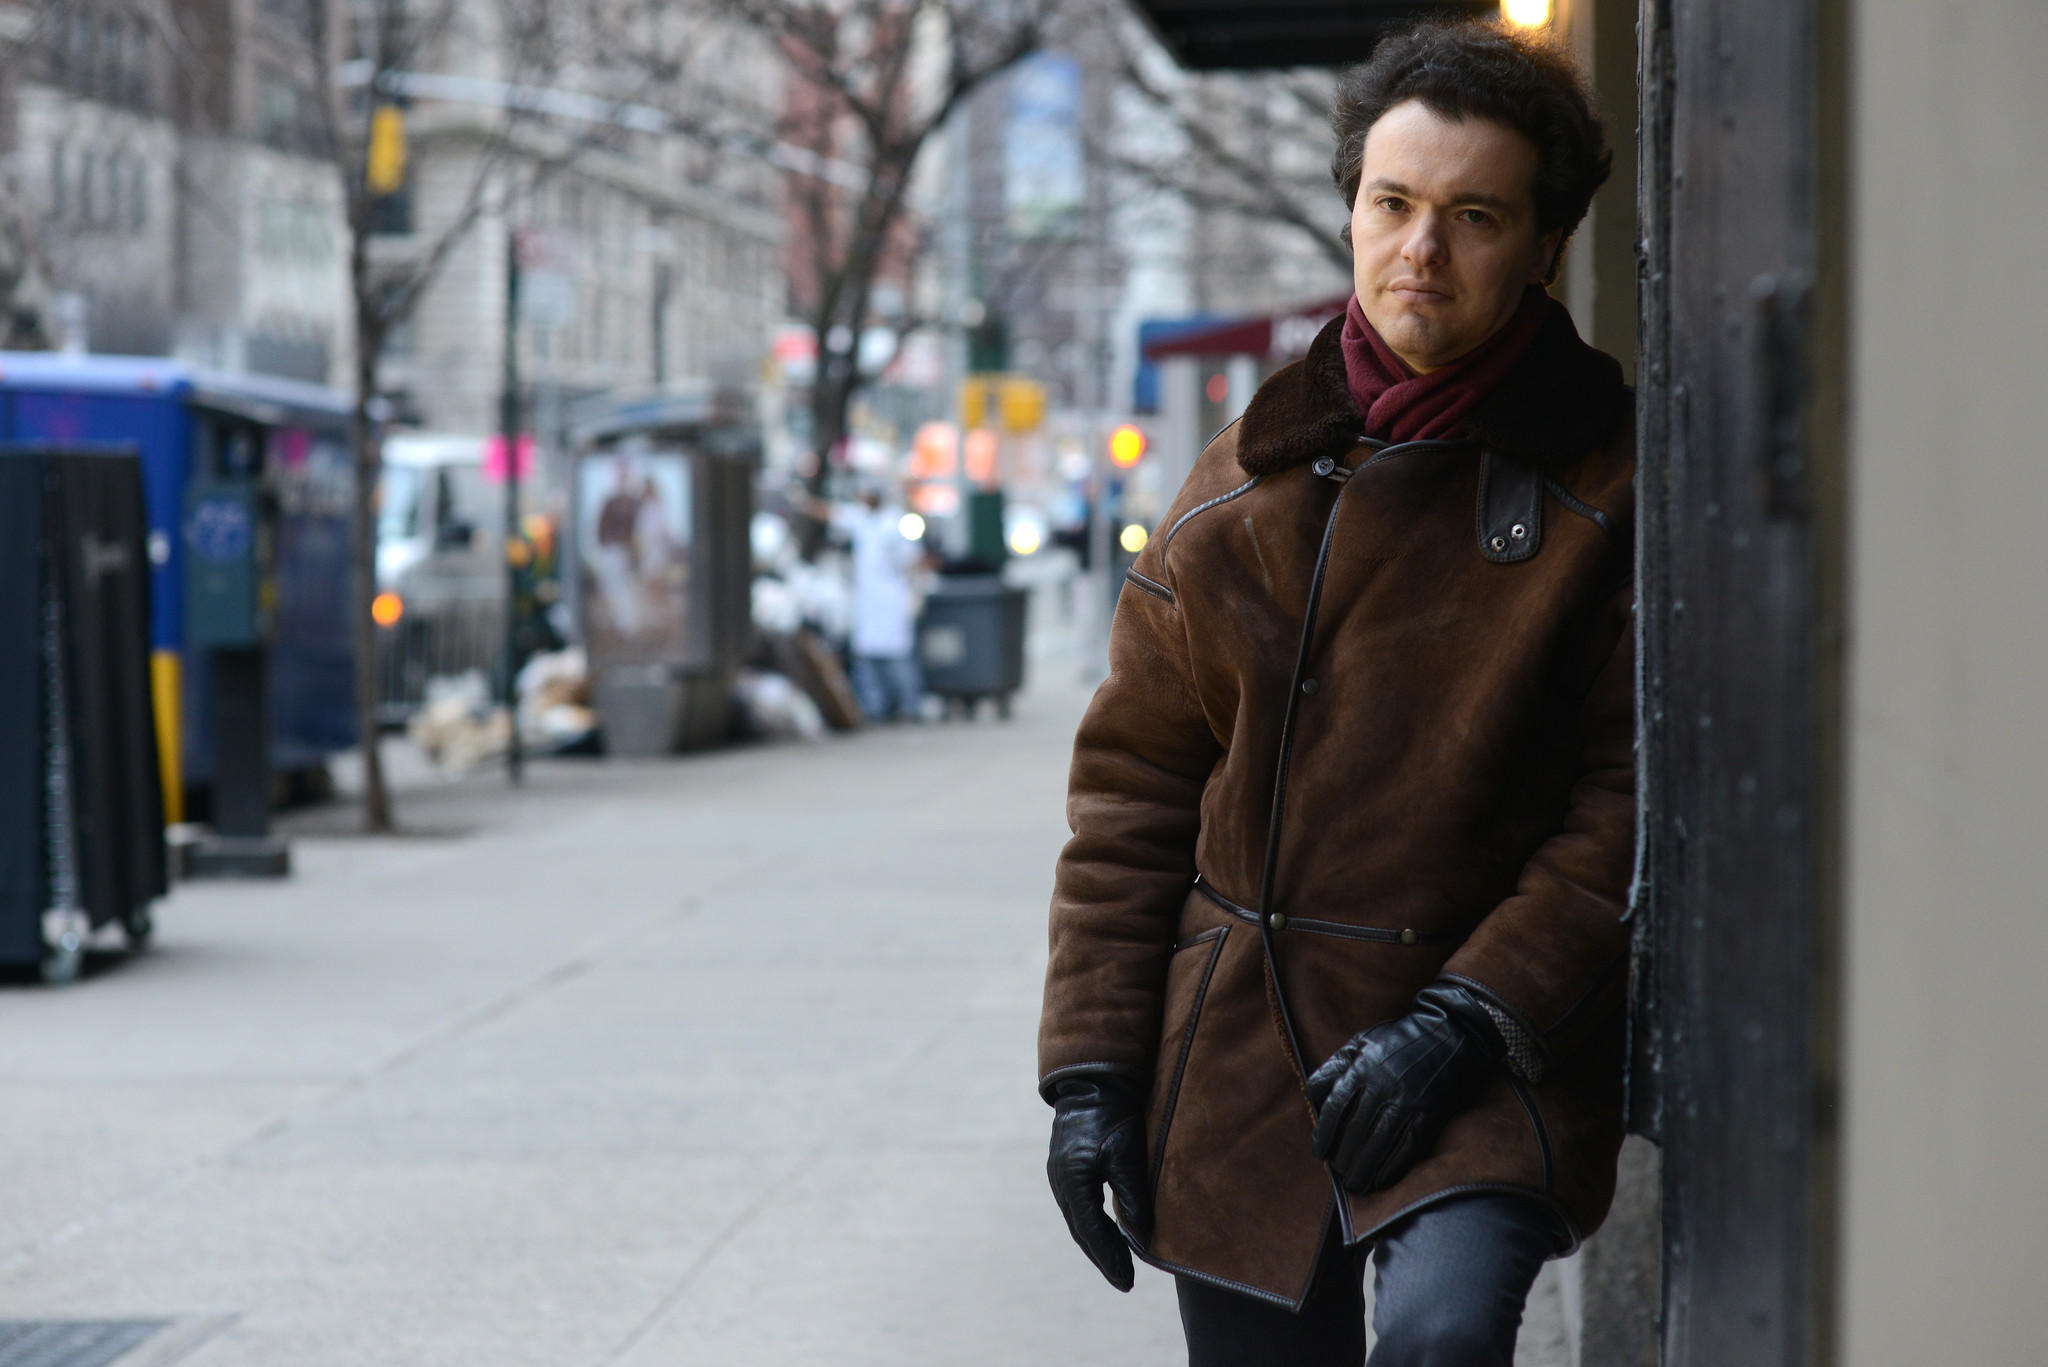 Pianist Evgeny Kissin on the Upper West Side in Manhattan, NY.